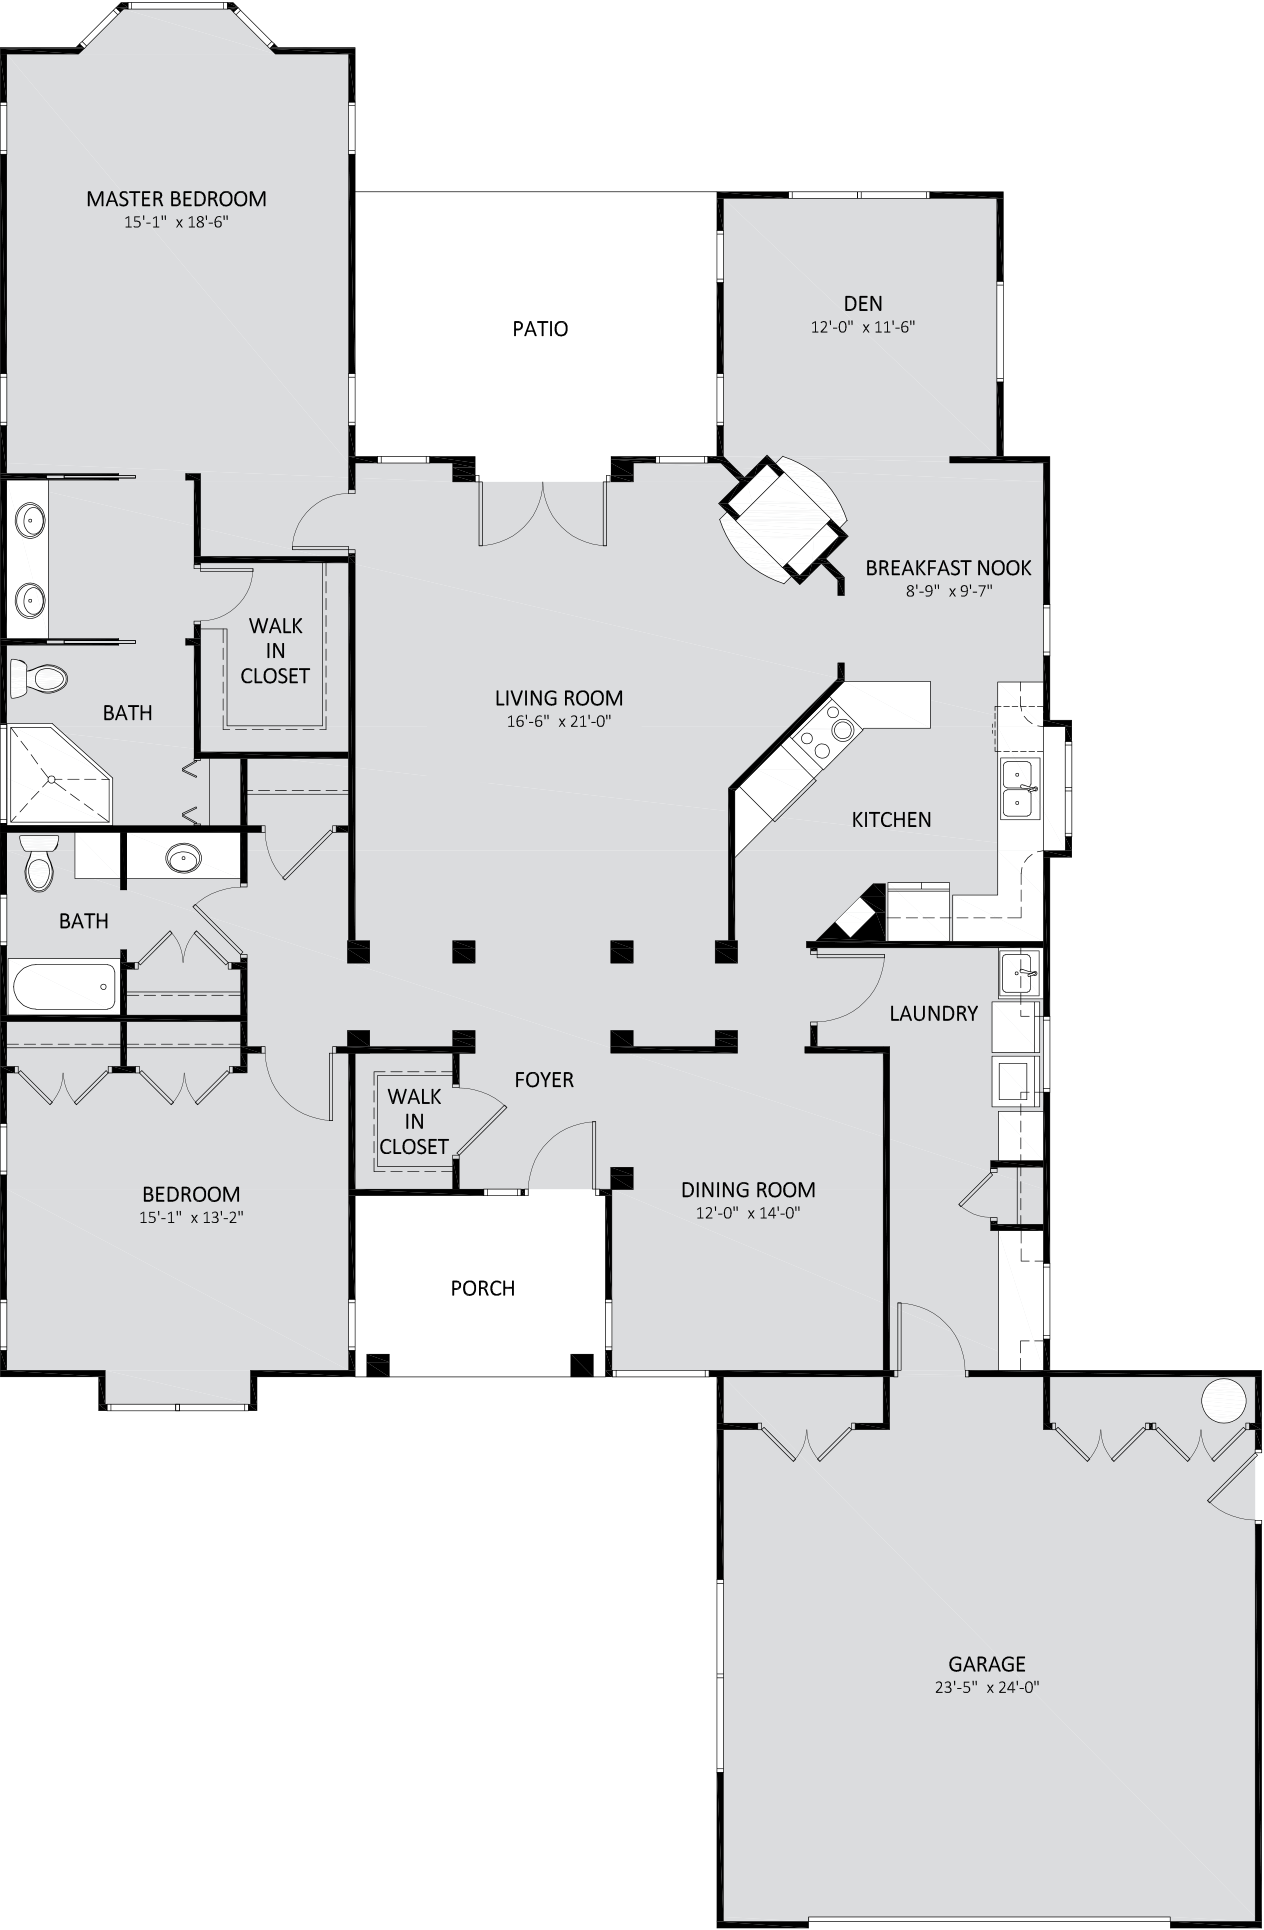 LVE Maplewood Carriage Home Two Bedroom-Den-One-Care Garage 2225 Sq Ft.png